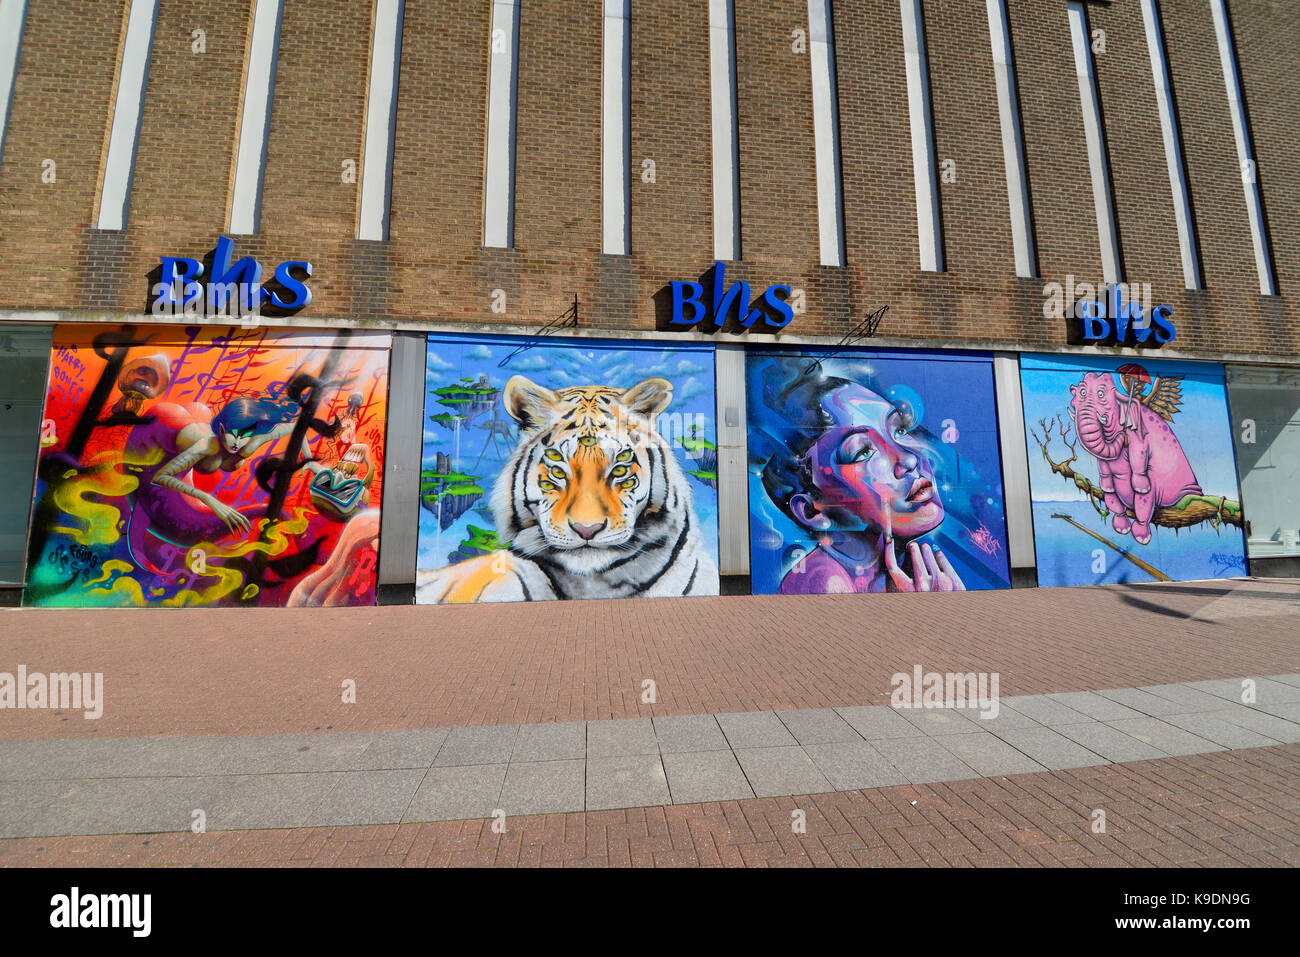 Estuary Fringe Festival Artworks on the closed BHS British Home Stores in High Street, Southend on Sea, Essex. Space - Stock Image